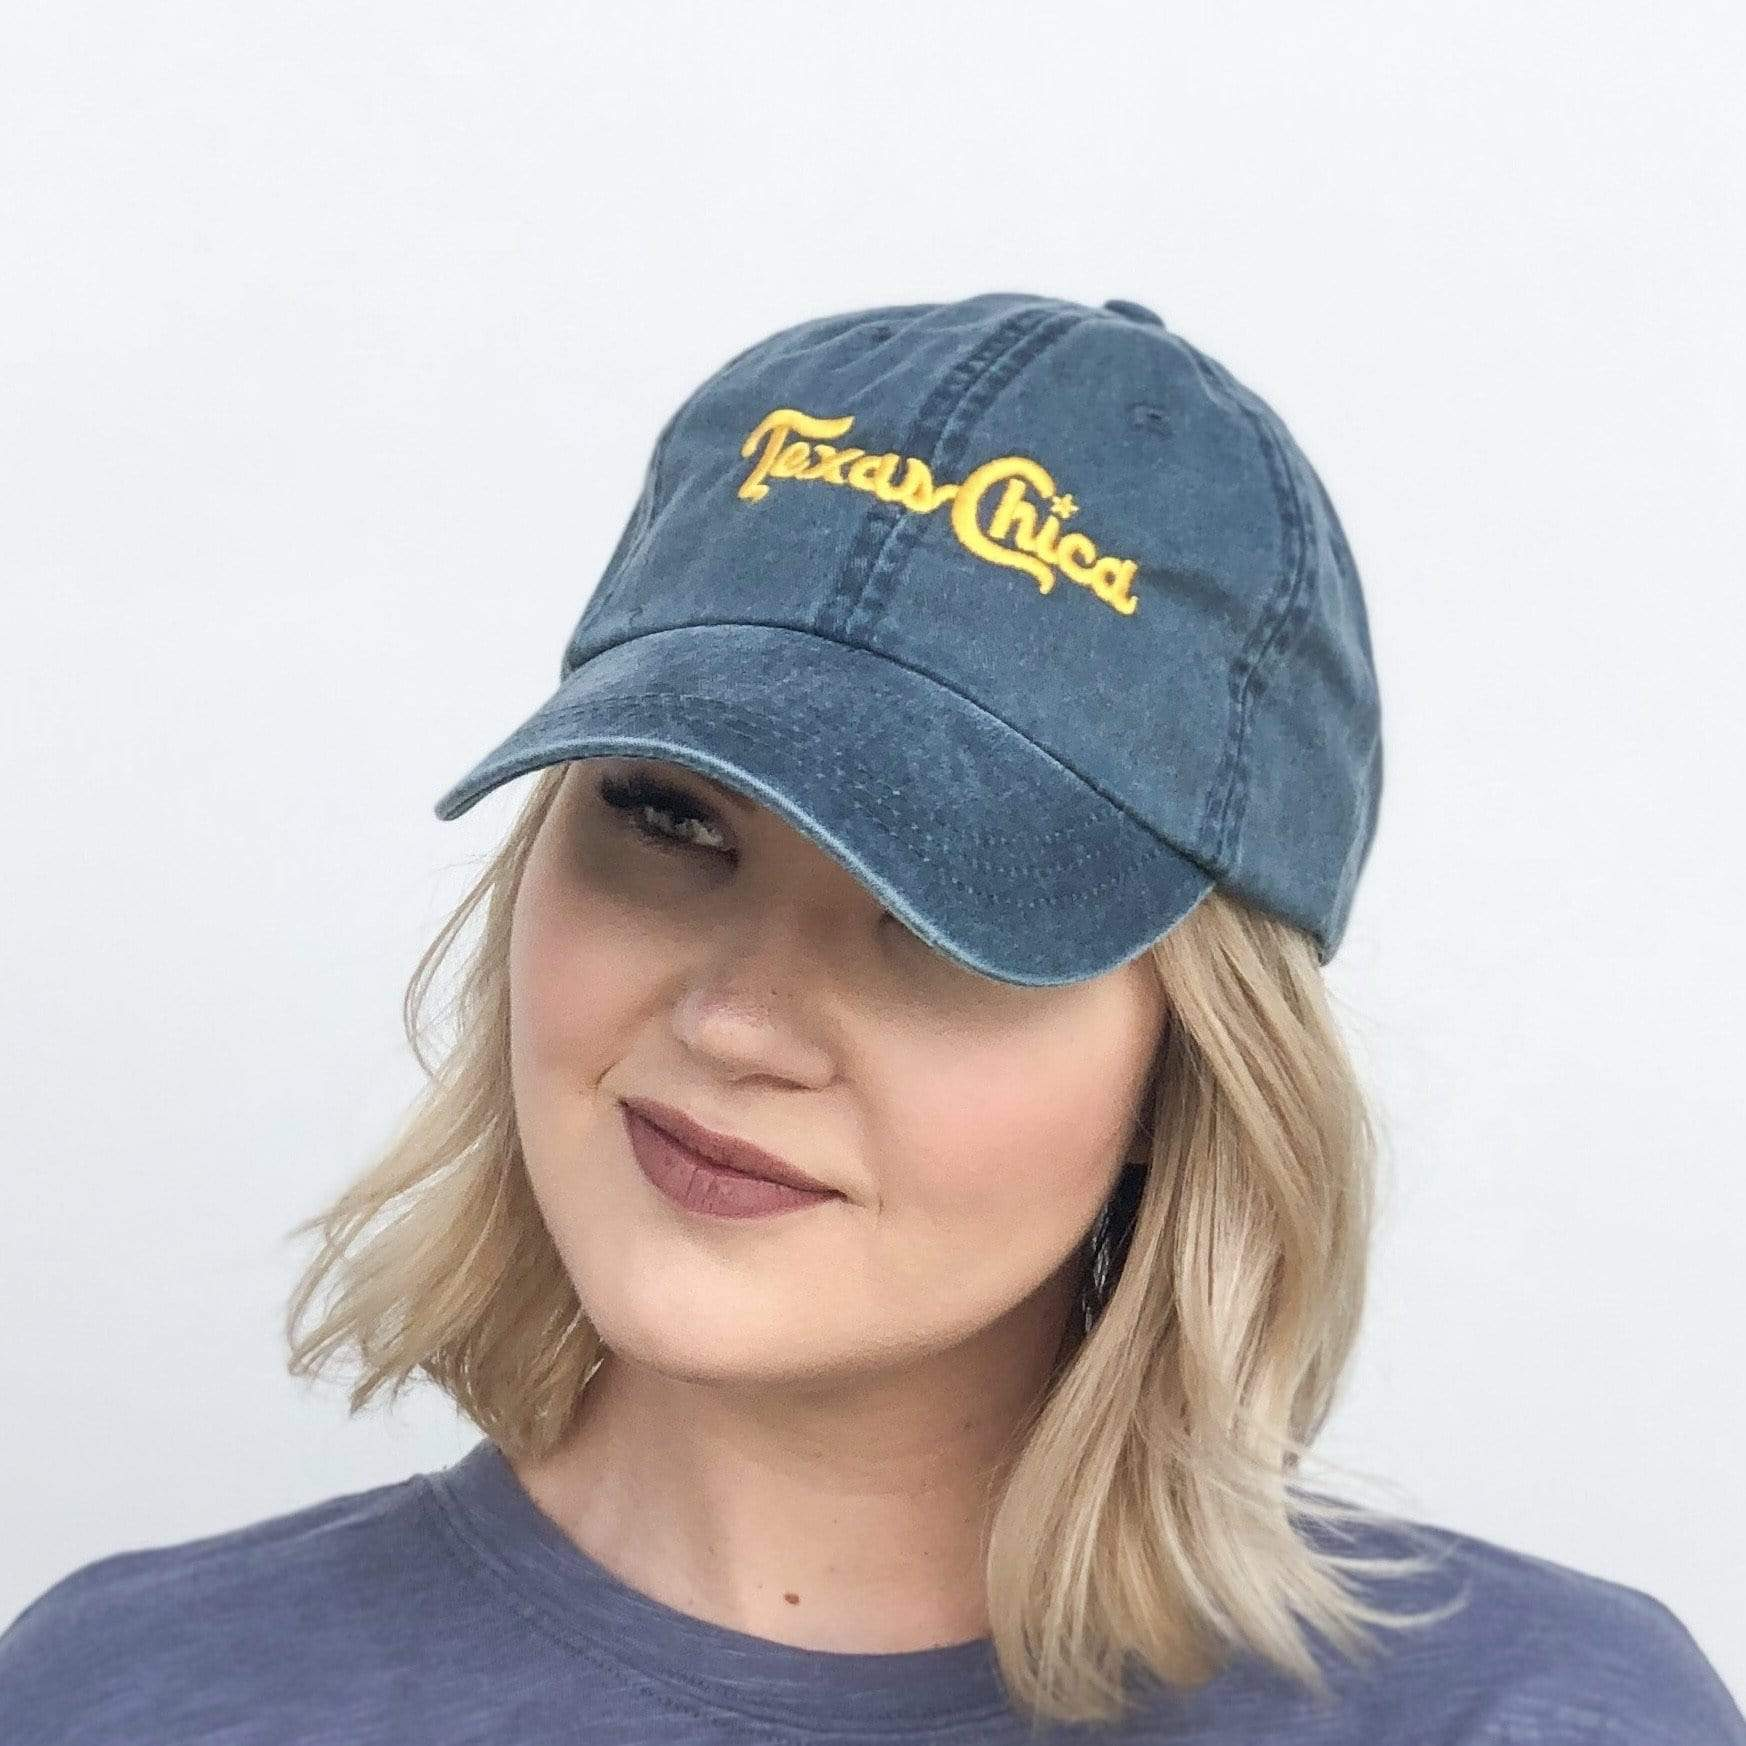 Texas Chica Hat - Brave Boutique